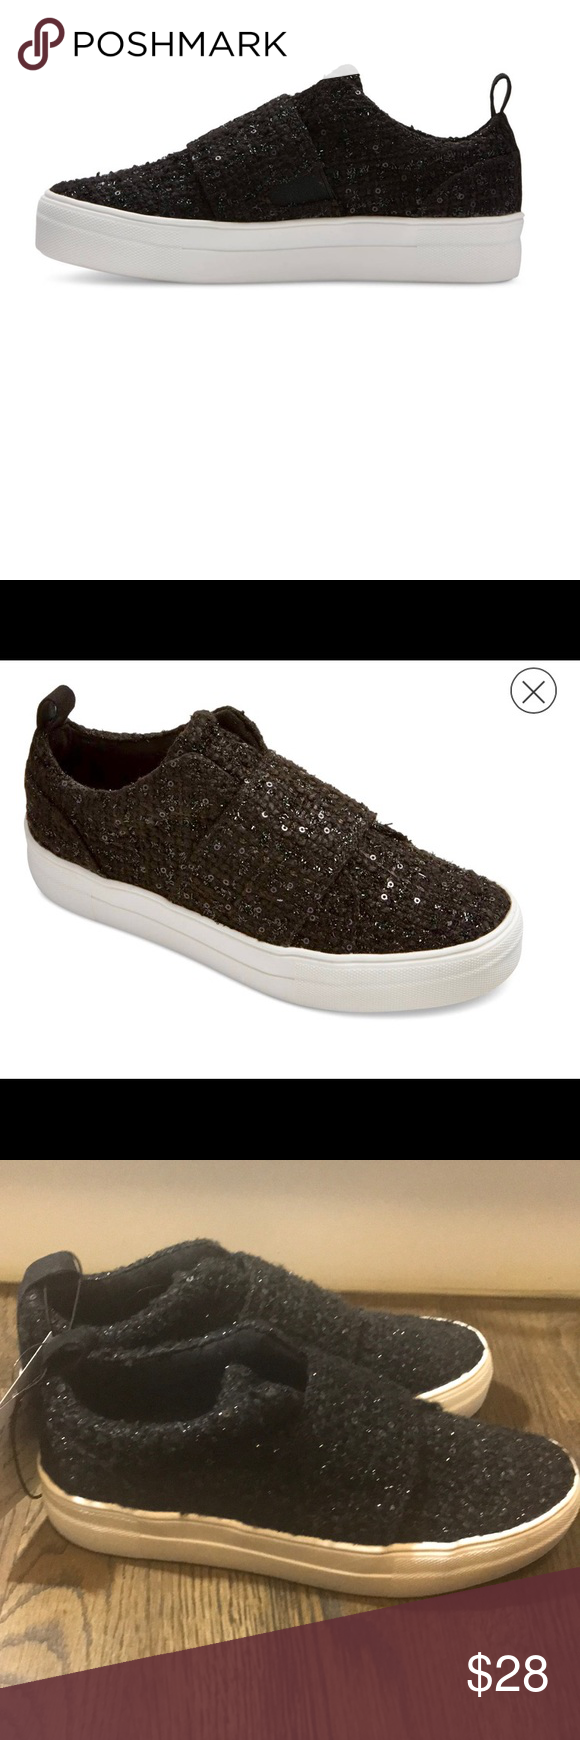 511a8a664c DV platform sequin sneaker sold out 6.5 Elevate your sneaker game with the  feminine cool dv Women's Lamra Slip On Platform Sneaker.